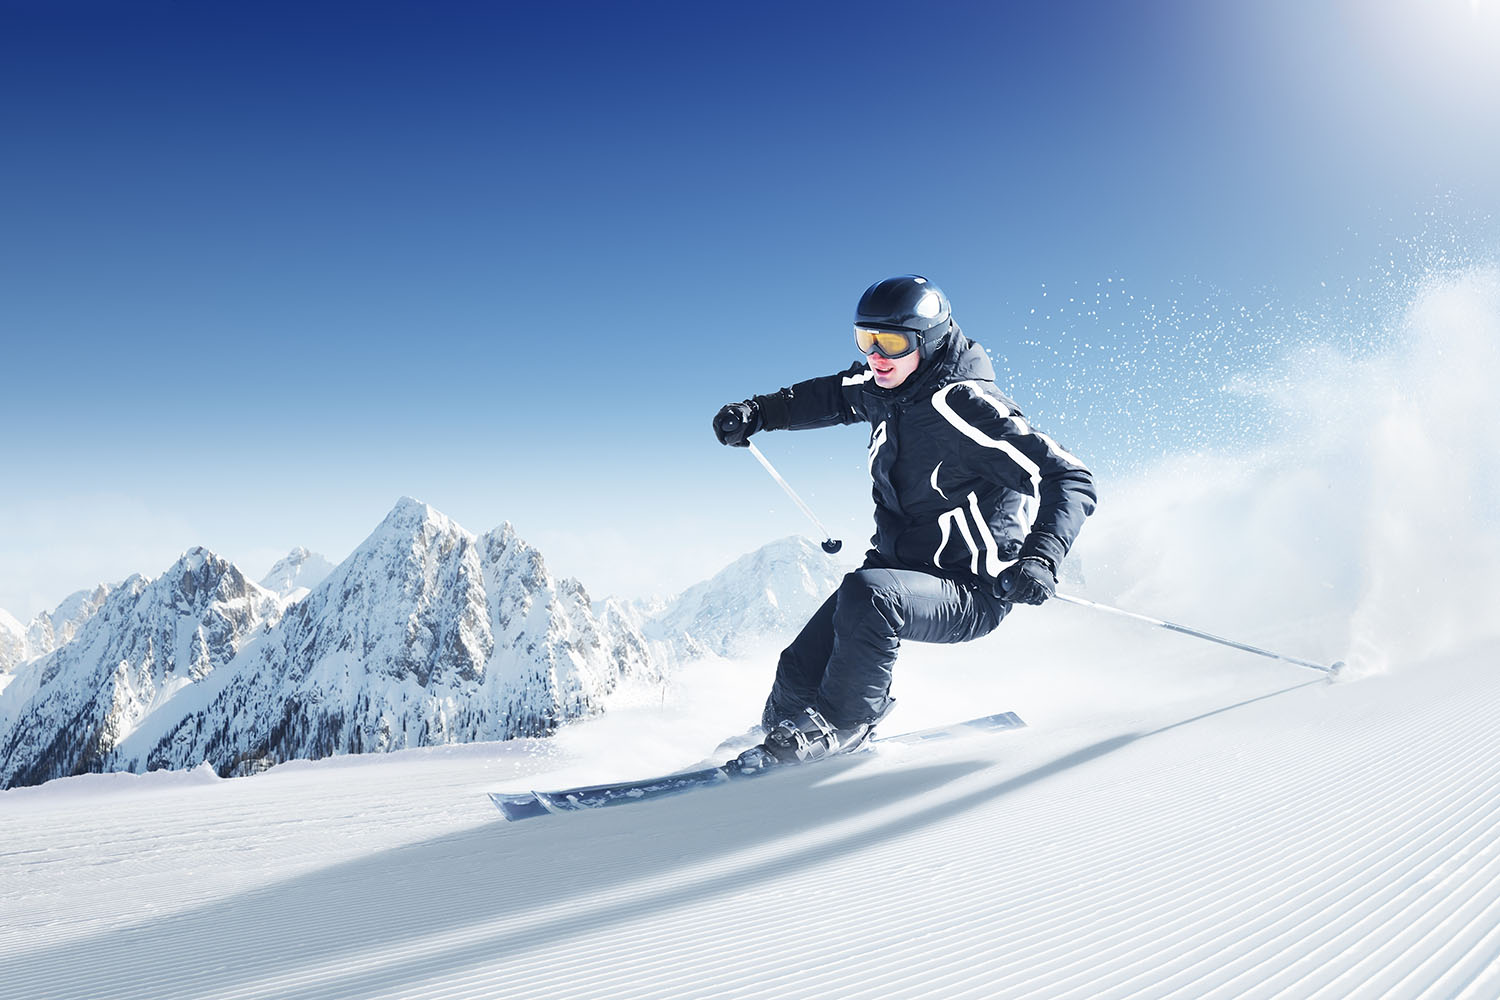 Fast-Moving Action - Skier